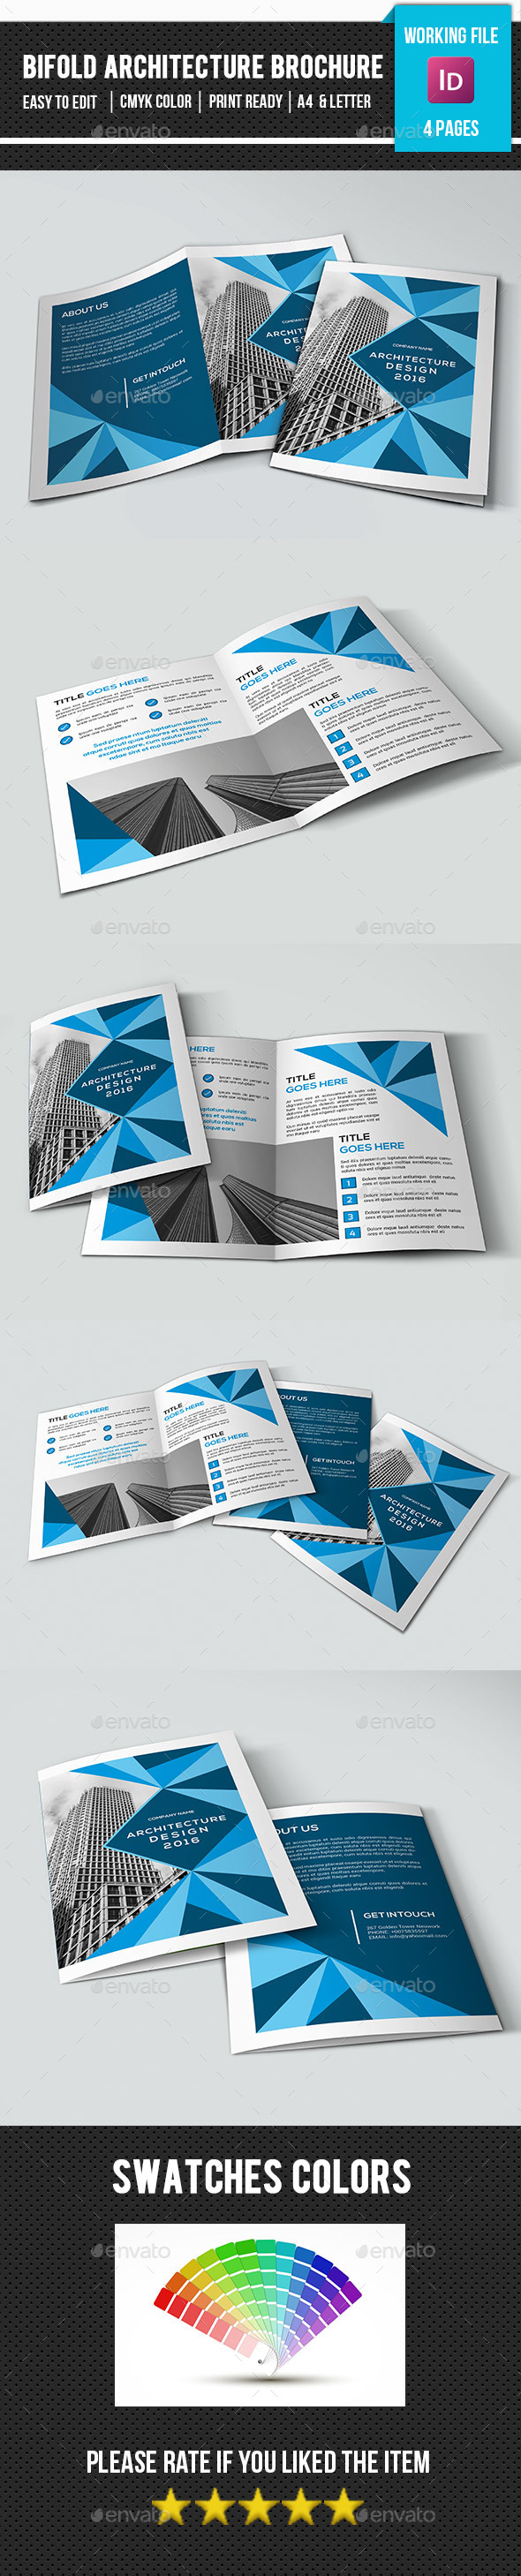 Business Bifold Brochure-V366 - Corporate Brochures